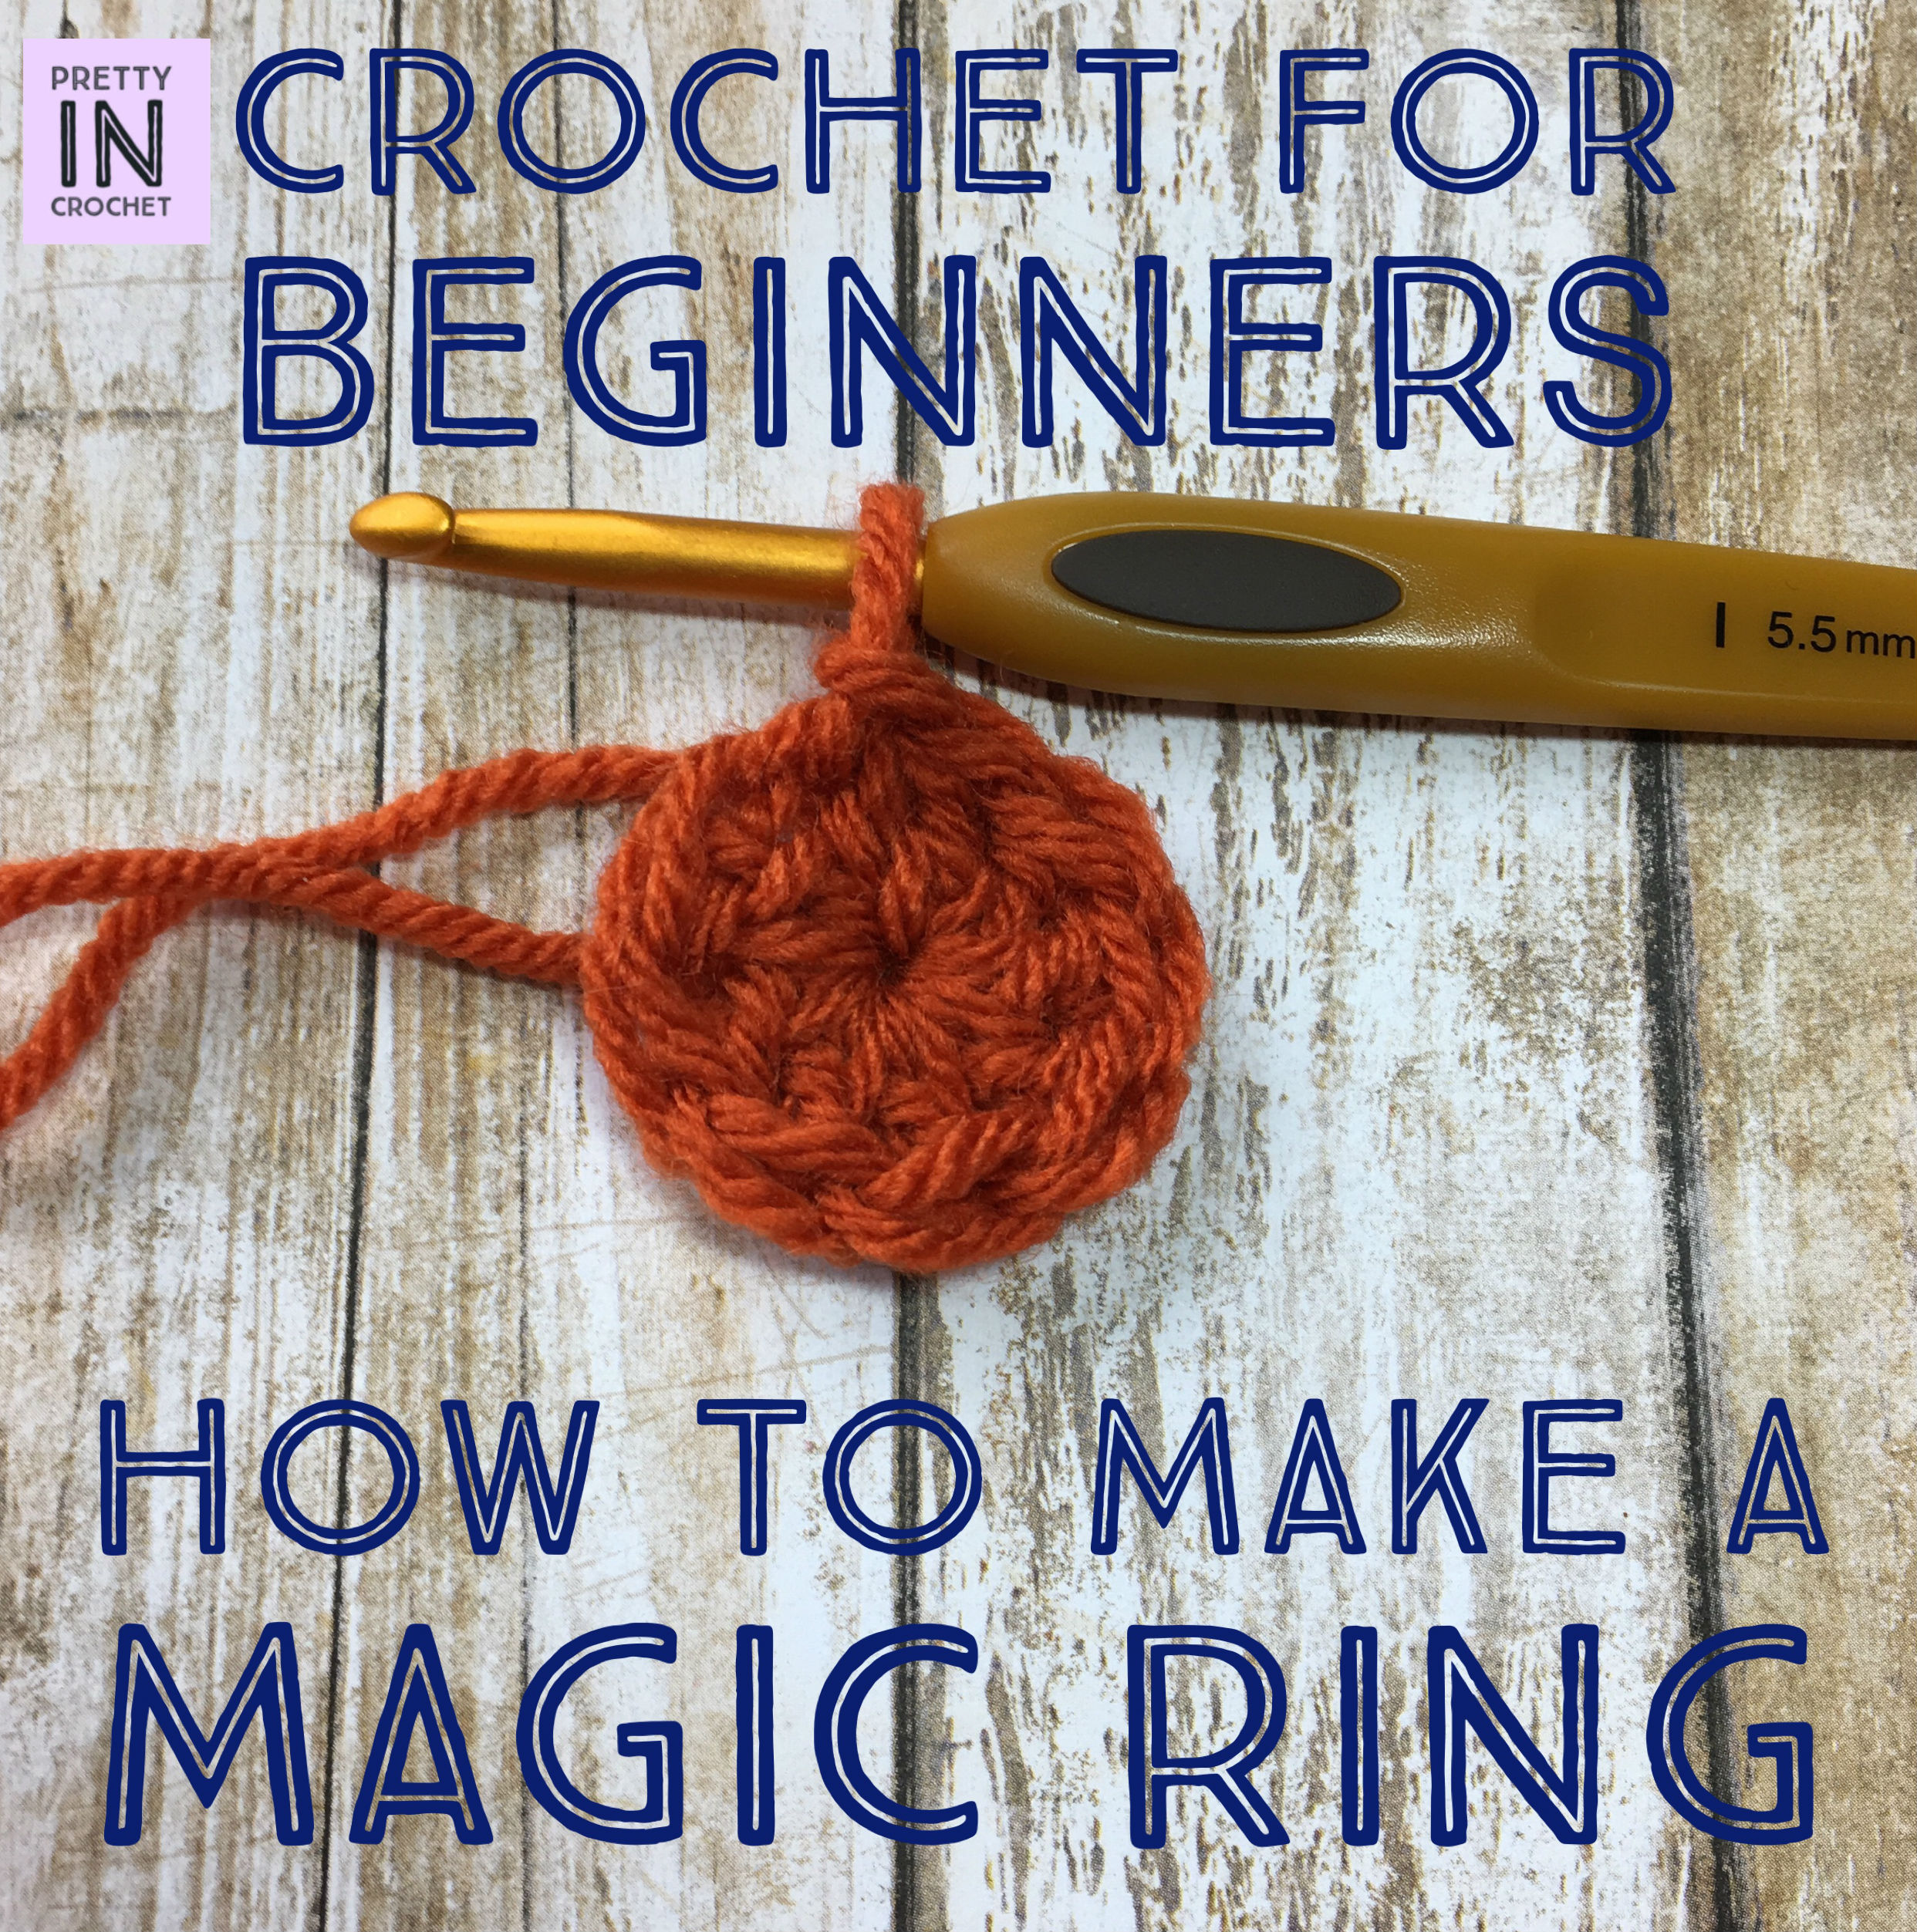 Crochet For Beginners: How to Make a Magic Ring